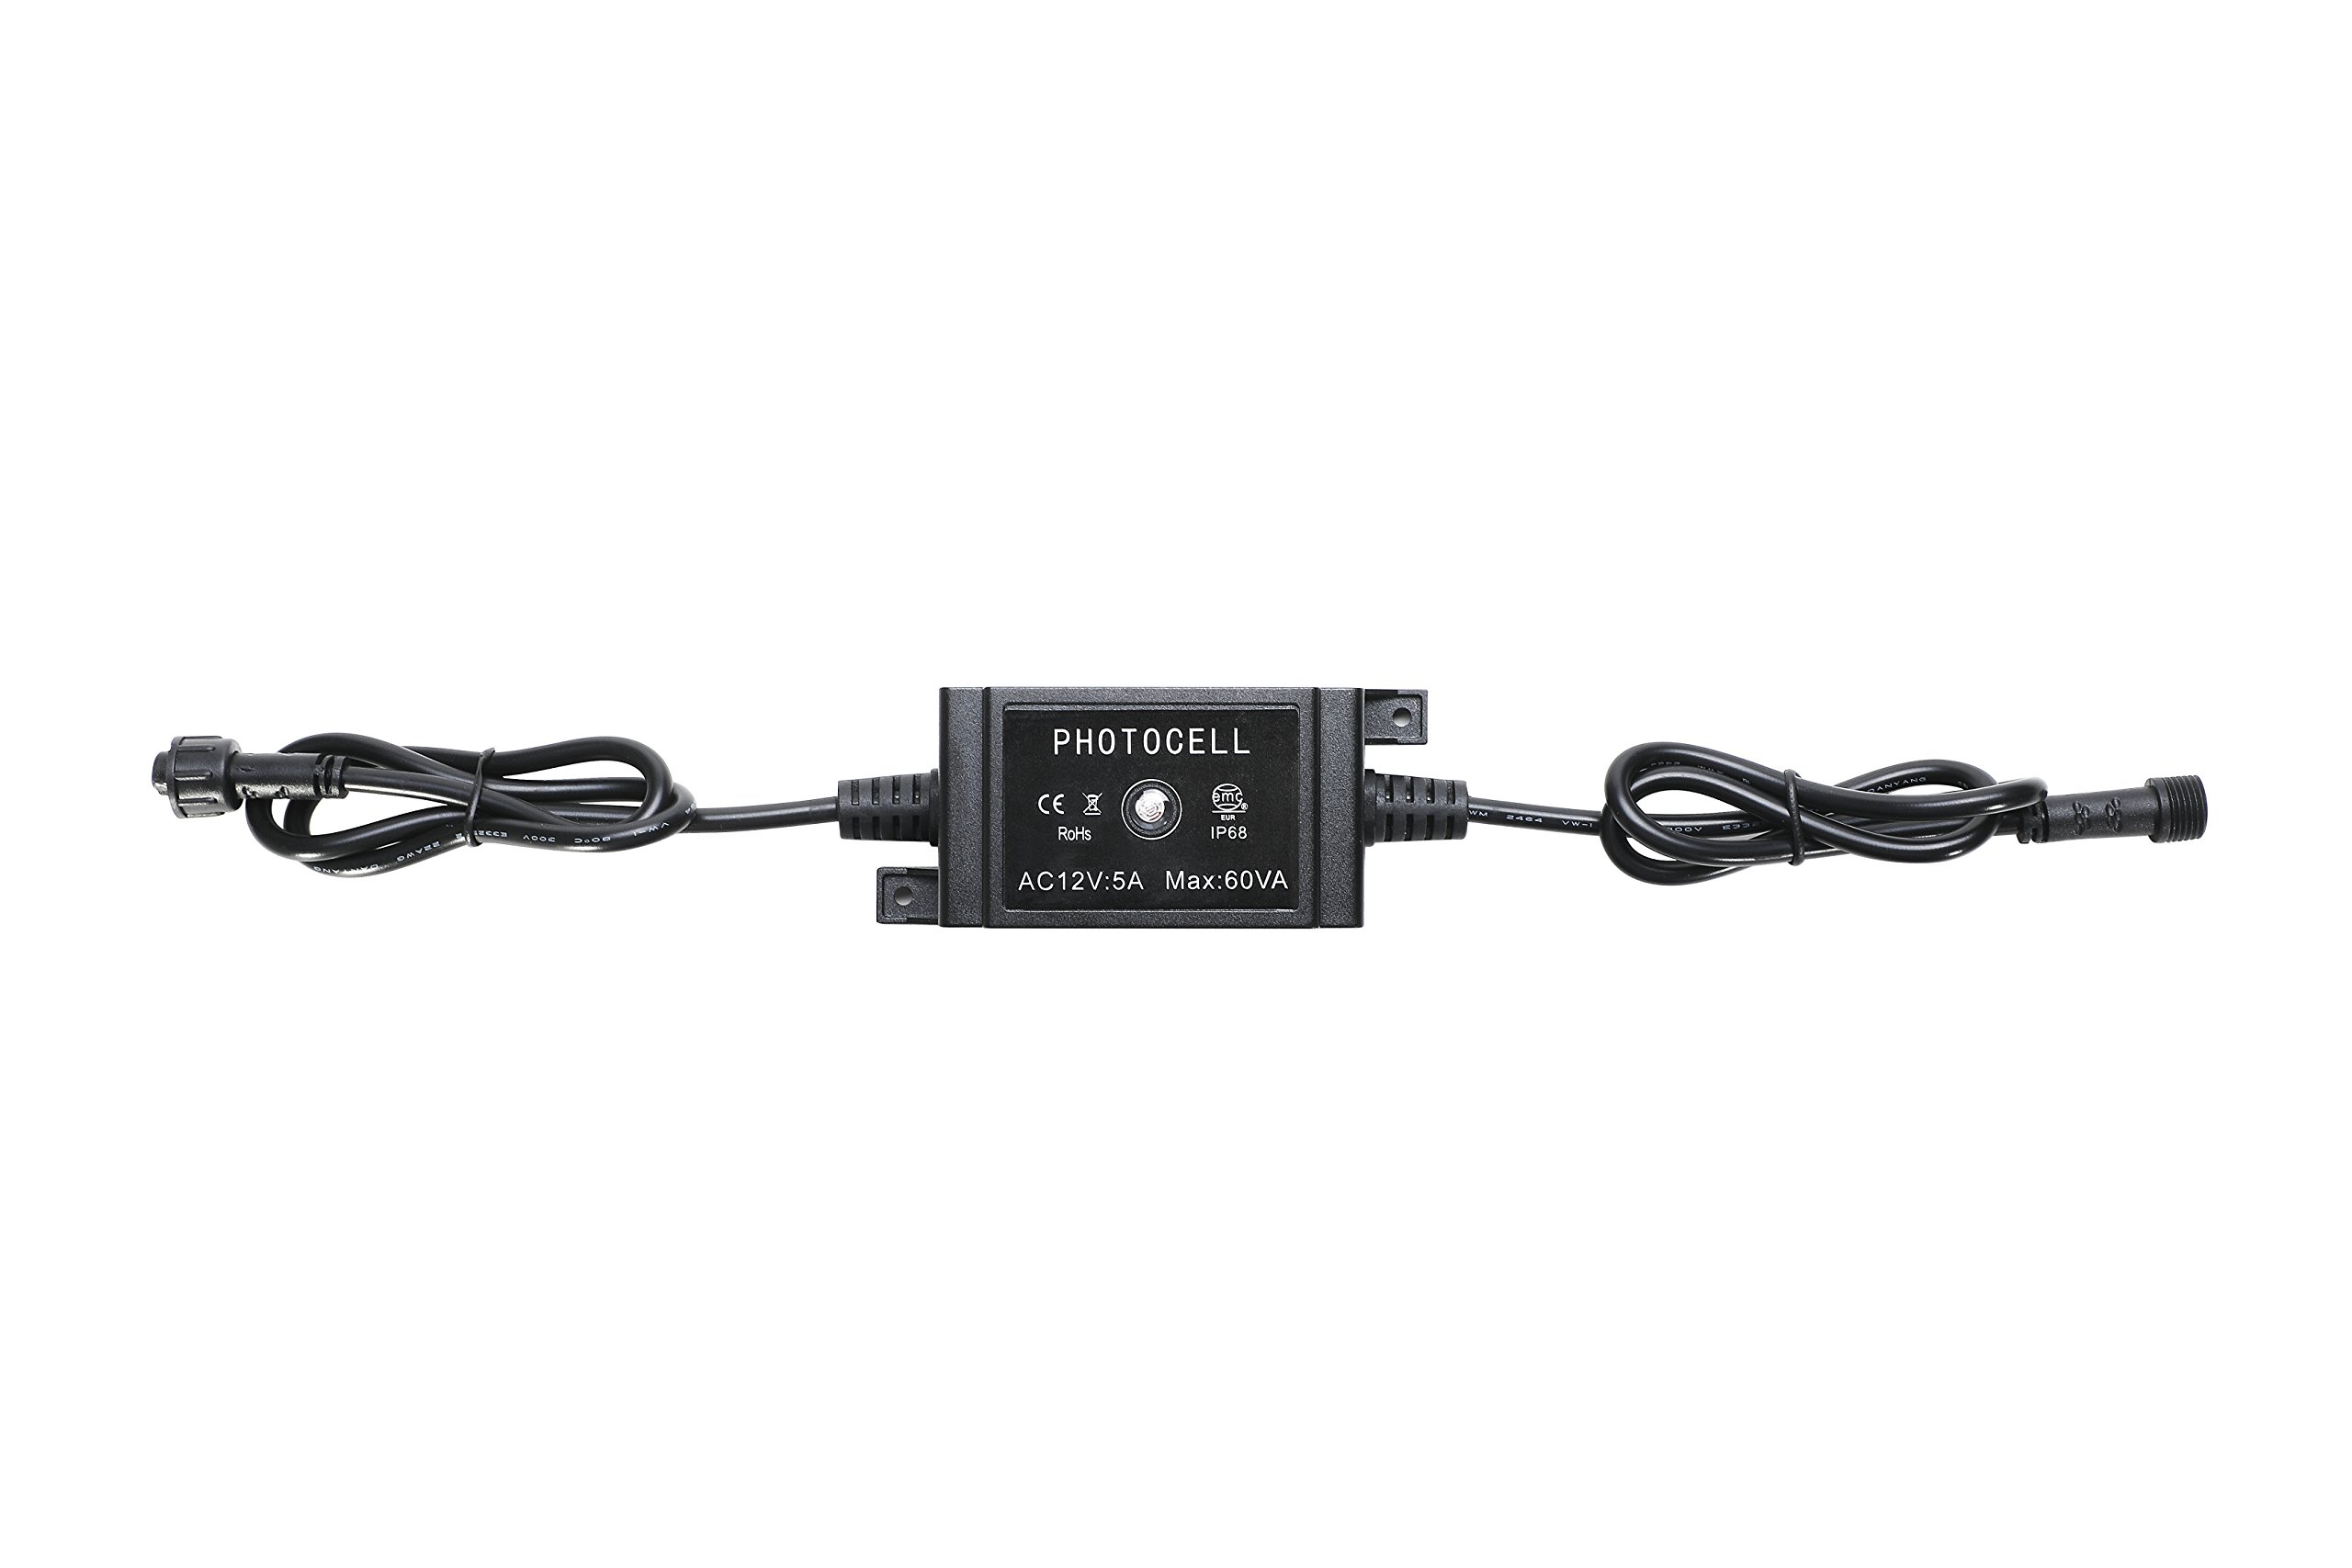 FVTLED LED Photocell DC 12V PC Waterproof IP68 Max.load Power 60W for Outdoor Light Switch Used